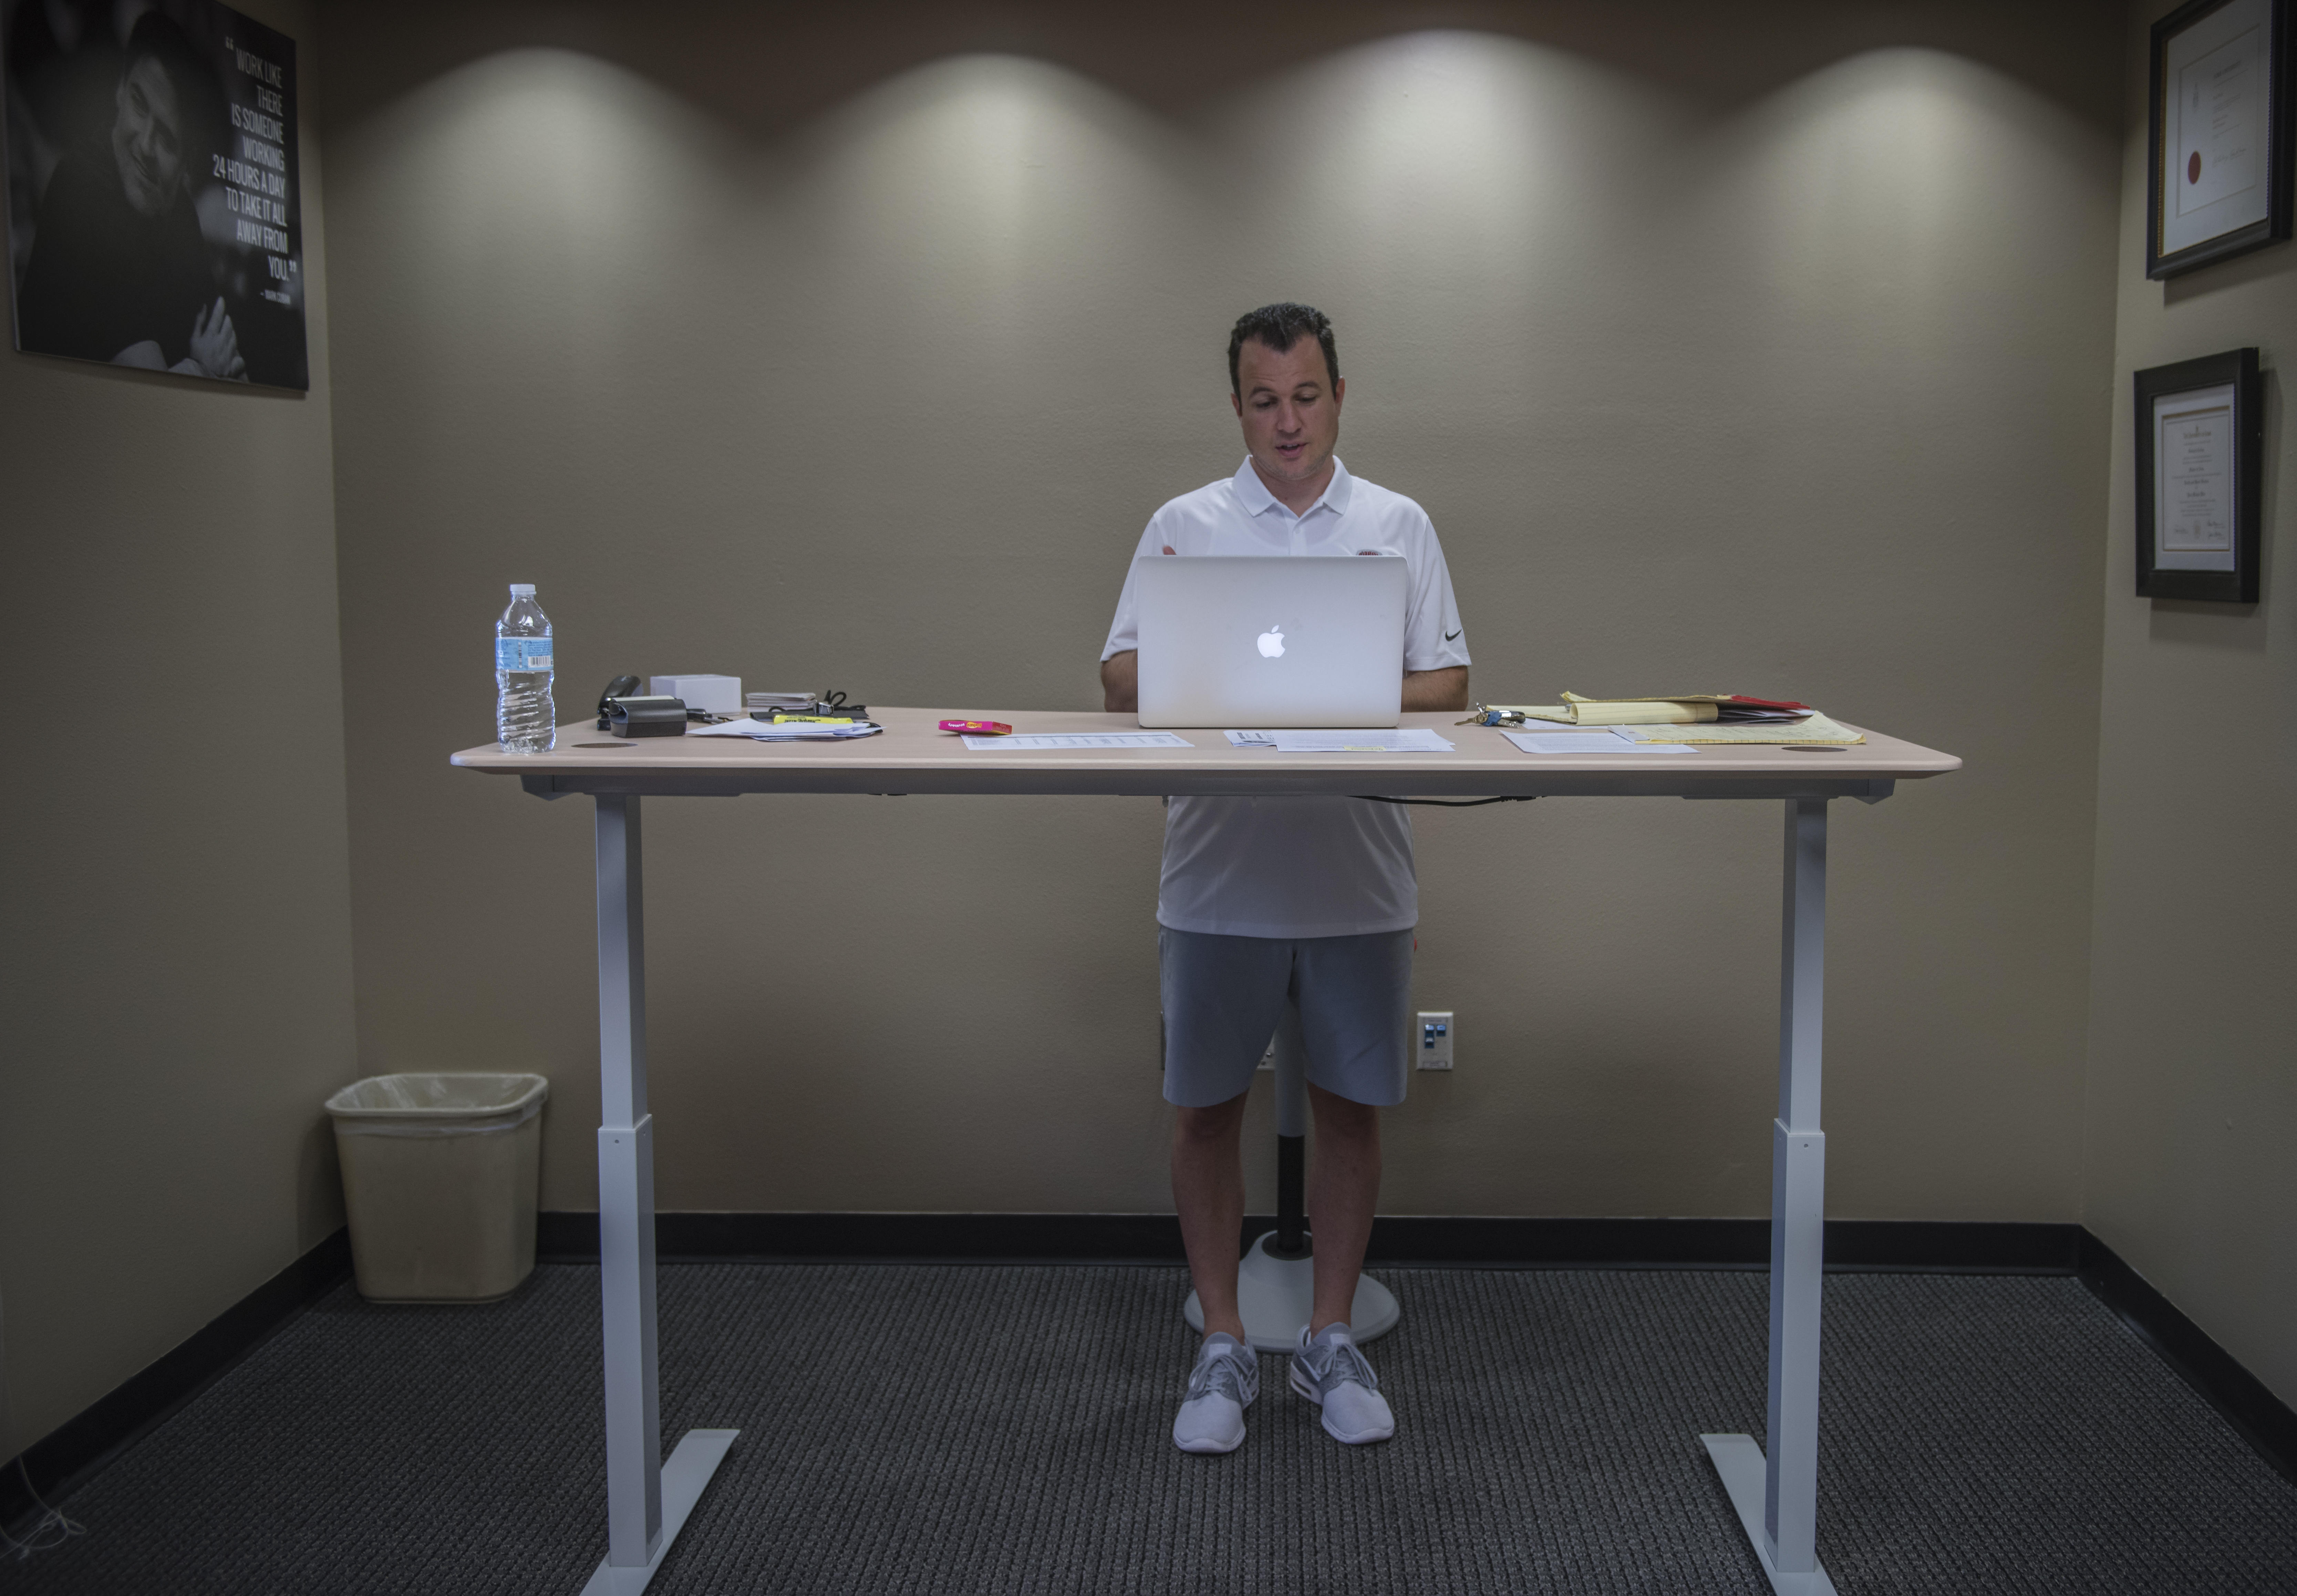 July 26, 2017 - Albuquerque, NM, U.S. - Albuquerque Journal.Pictured is New Mexico's mens basketball coach Paul Weir(cq) inside his office at working at a stand up desk. photographed inside the film room at the Rudy Davalos basketball practice facility. .Albuquerque, New Mexico Roberto E. Rosales/Albuquerque Journal (Credit Image: © Roberto E. Rosales/Albuquerque Journal via ZUMA Wire)